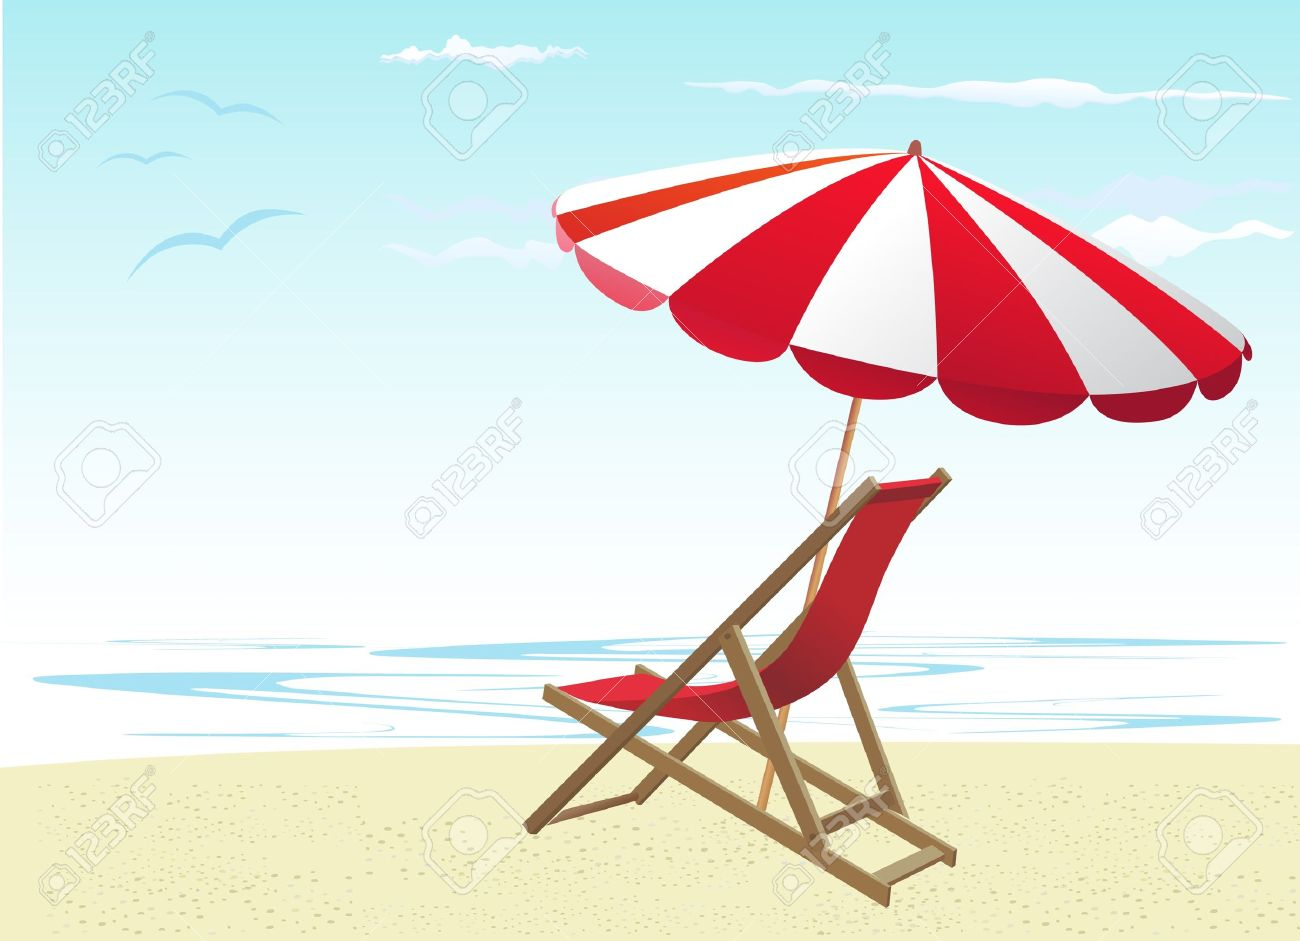 hight resolution of beach chairs and umbrella stock vector 10182917